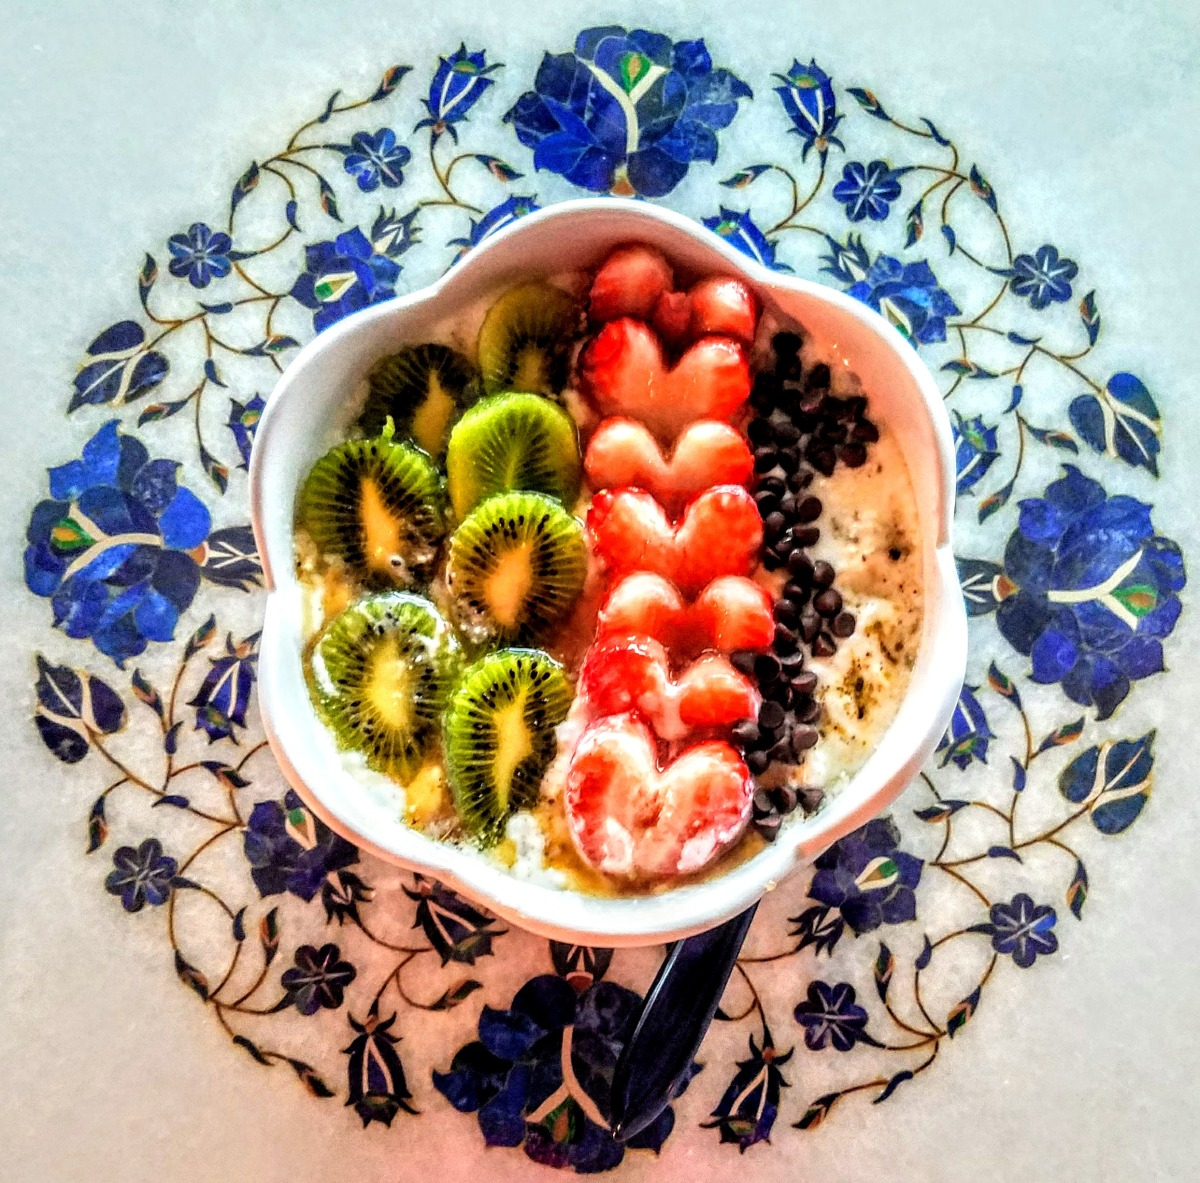 Yogurt Bowl IG